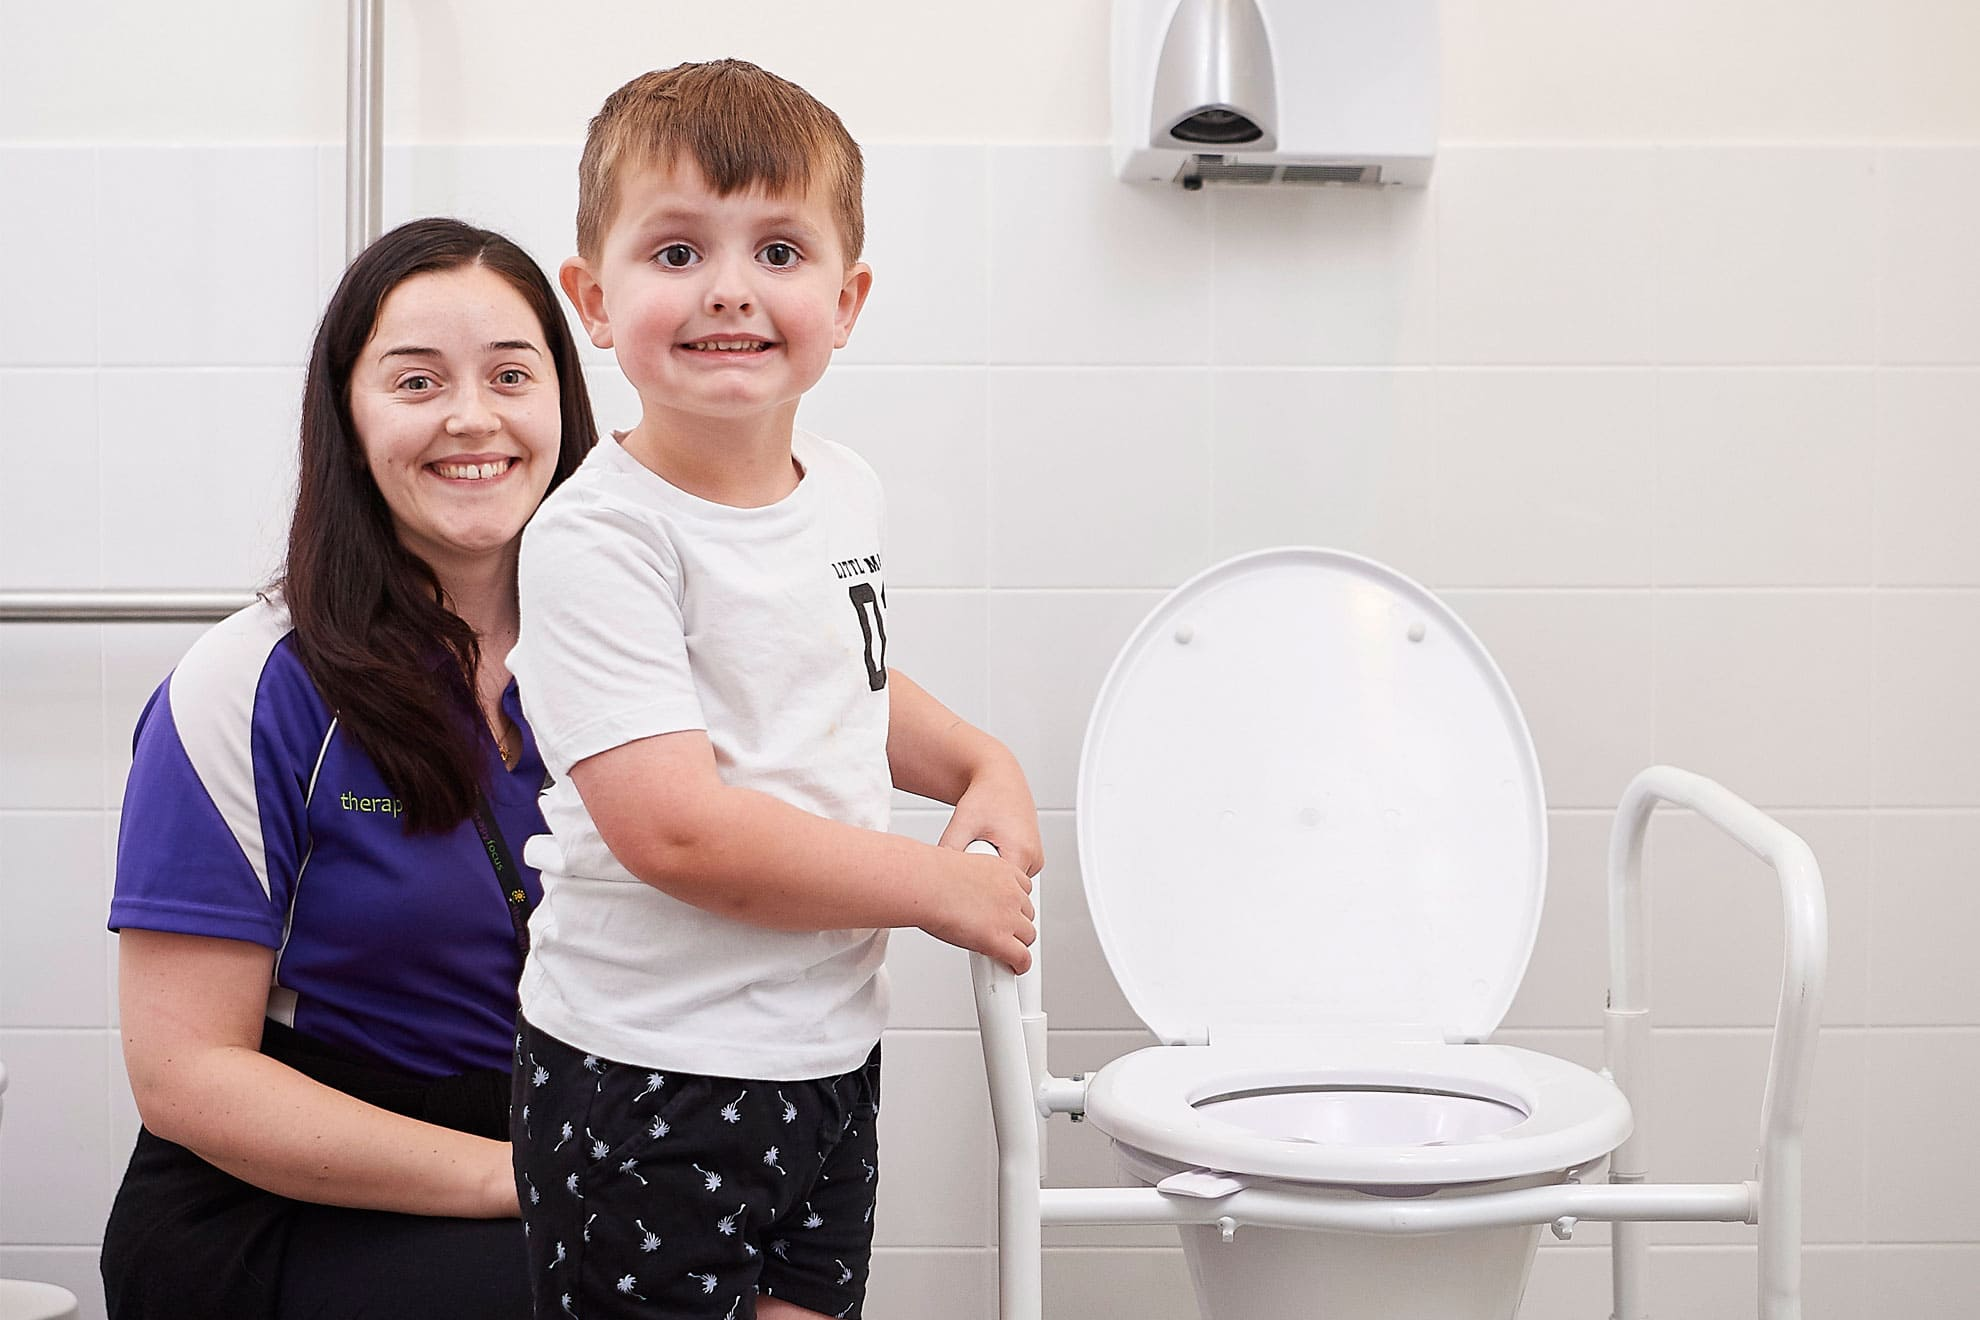 A boy and therapist standing next to a toilet